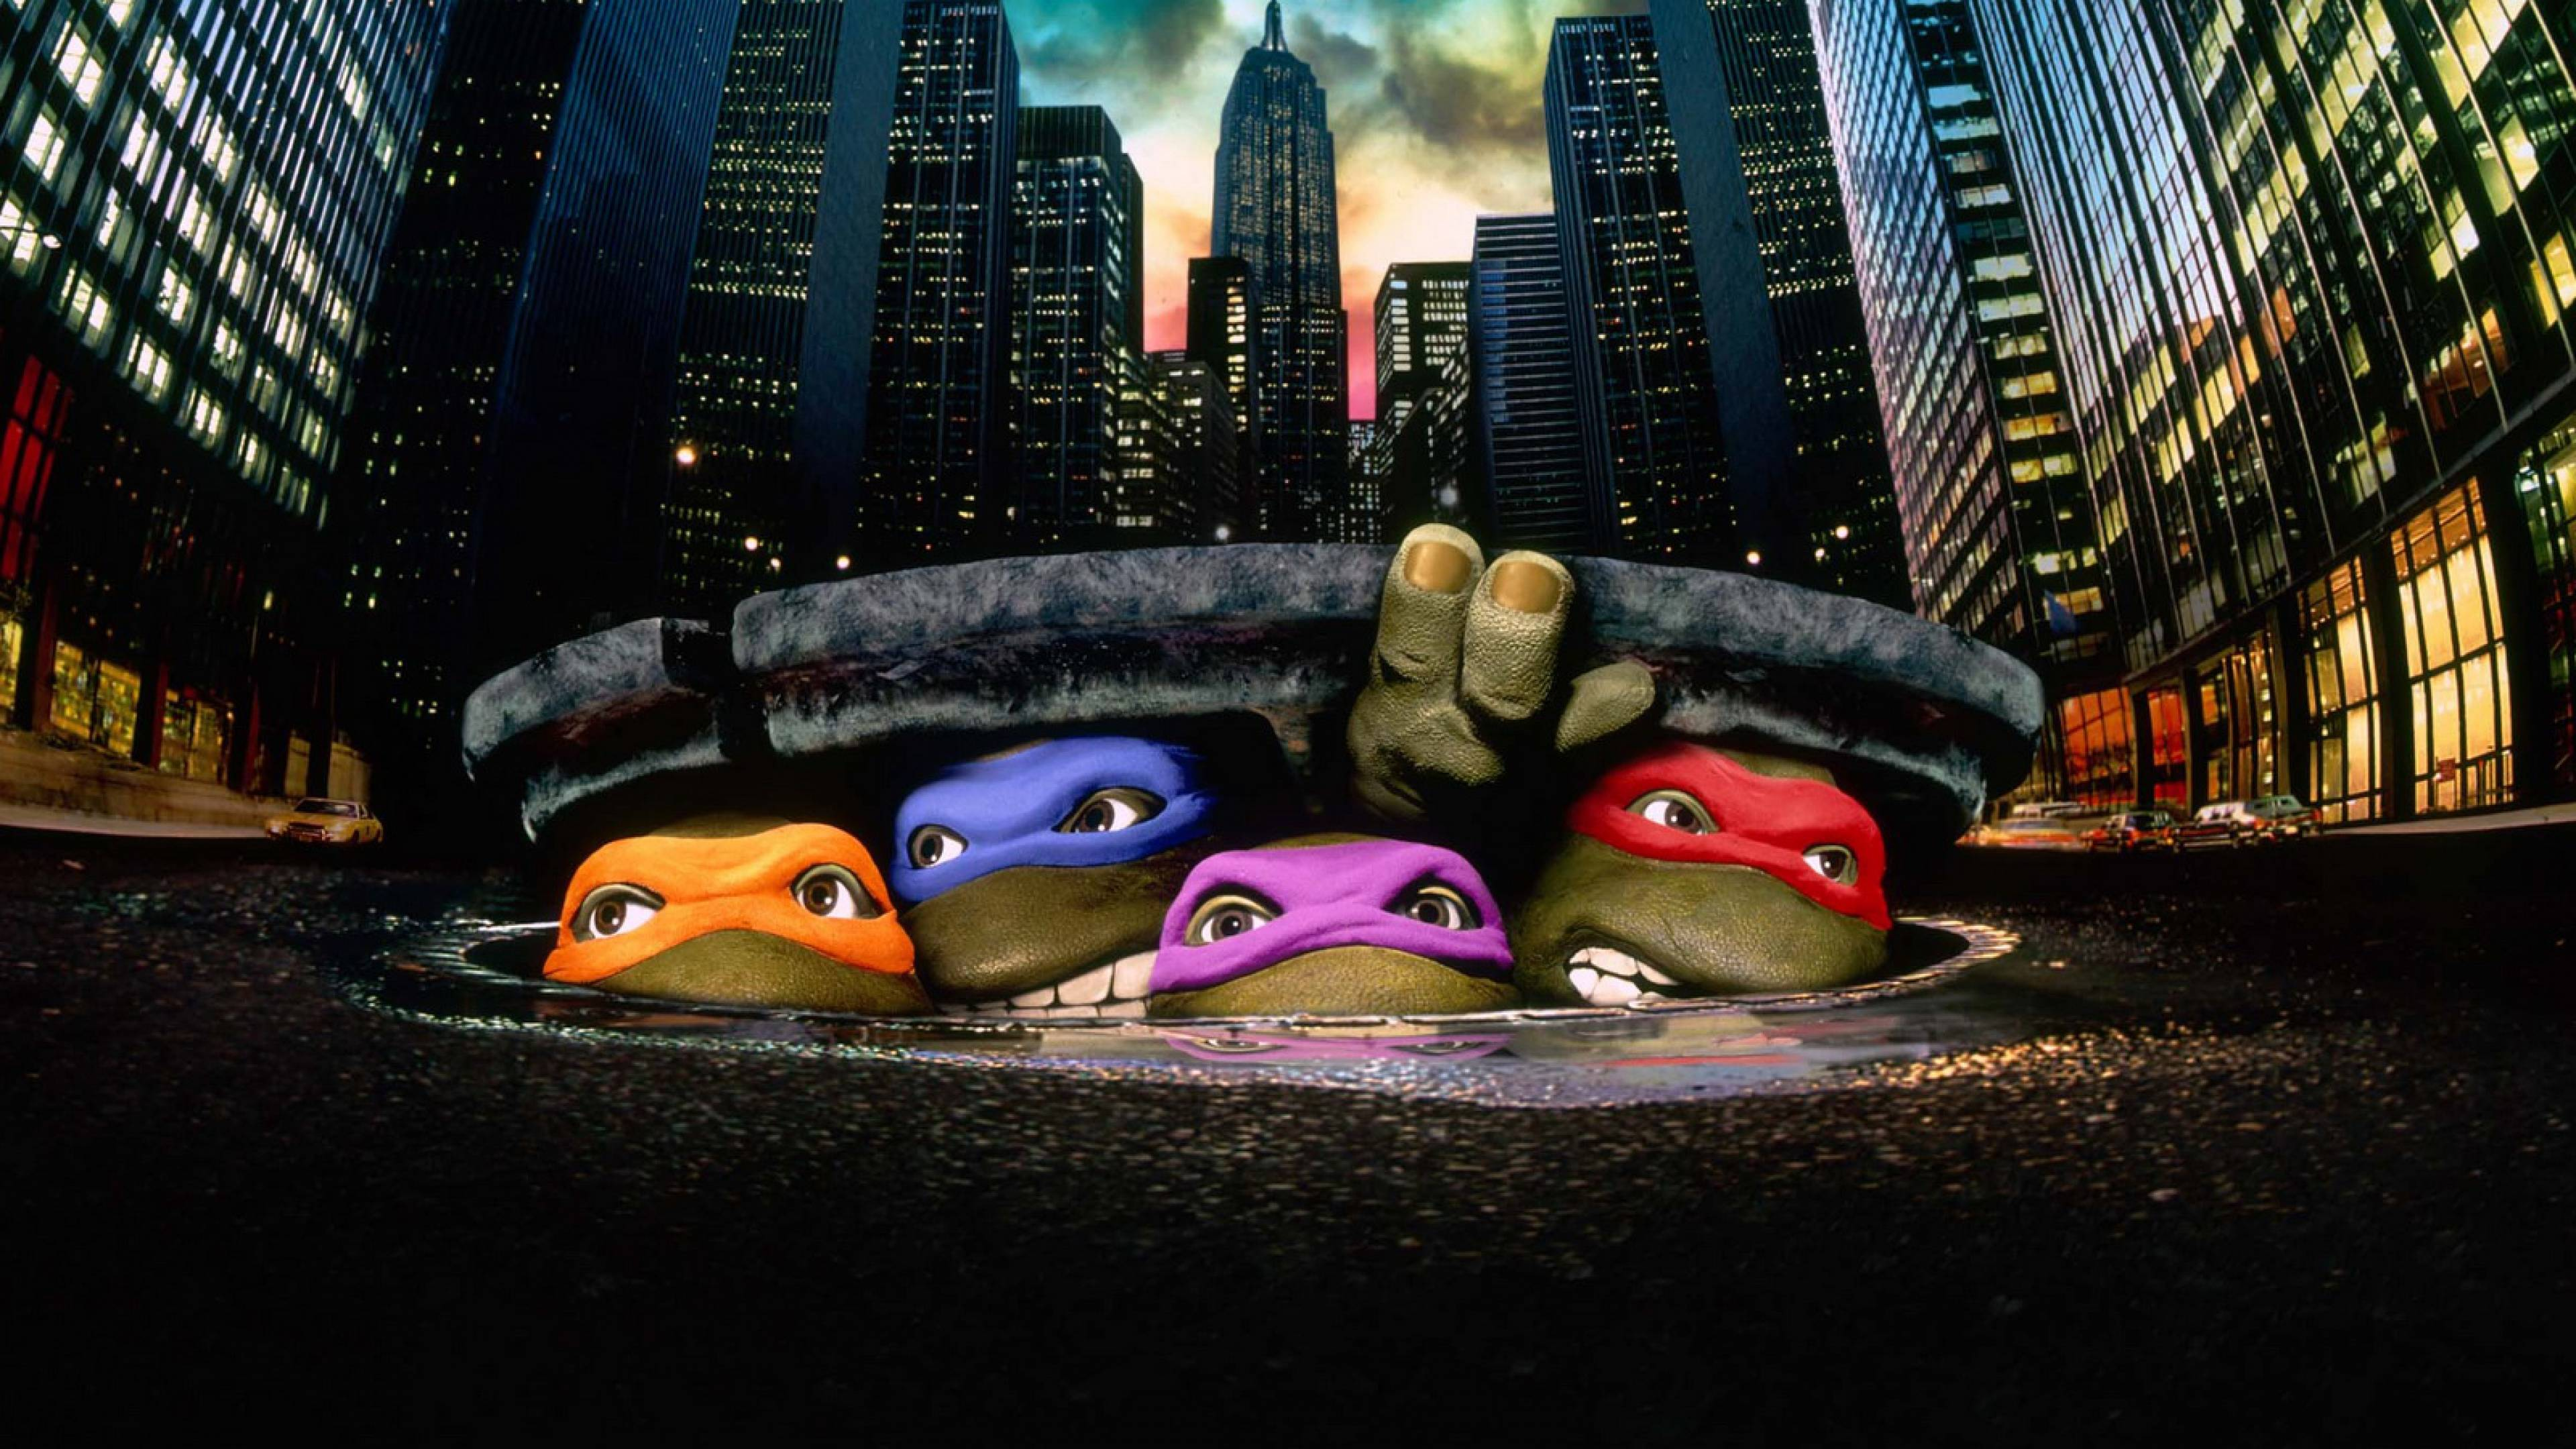 Teenage Mutant Ninja Turtles Wallpapers HD 30530 Wallpaper